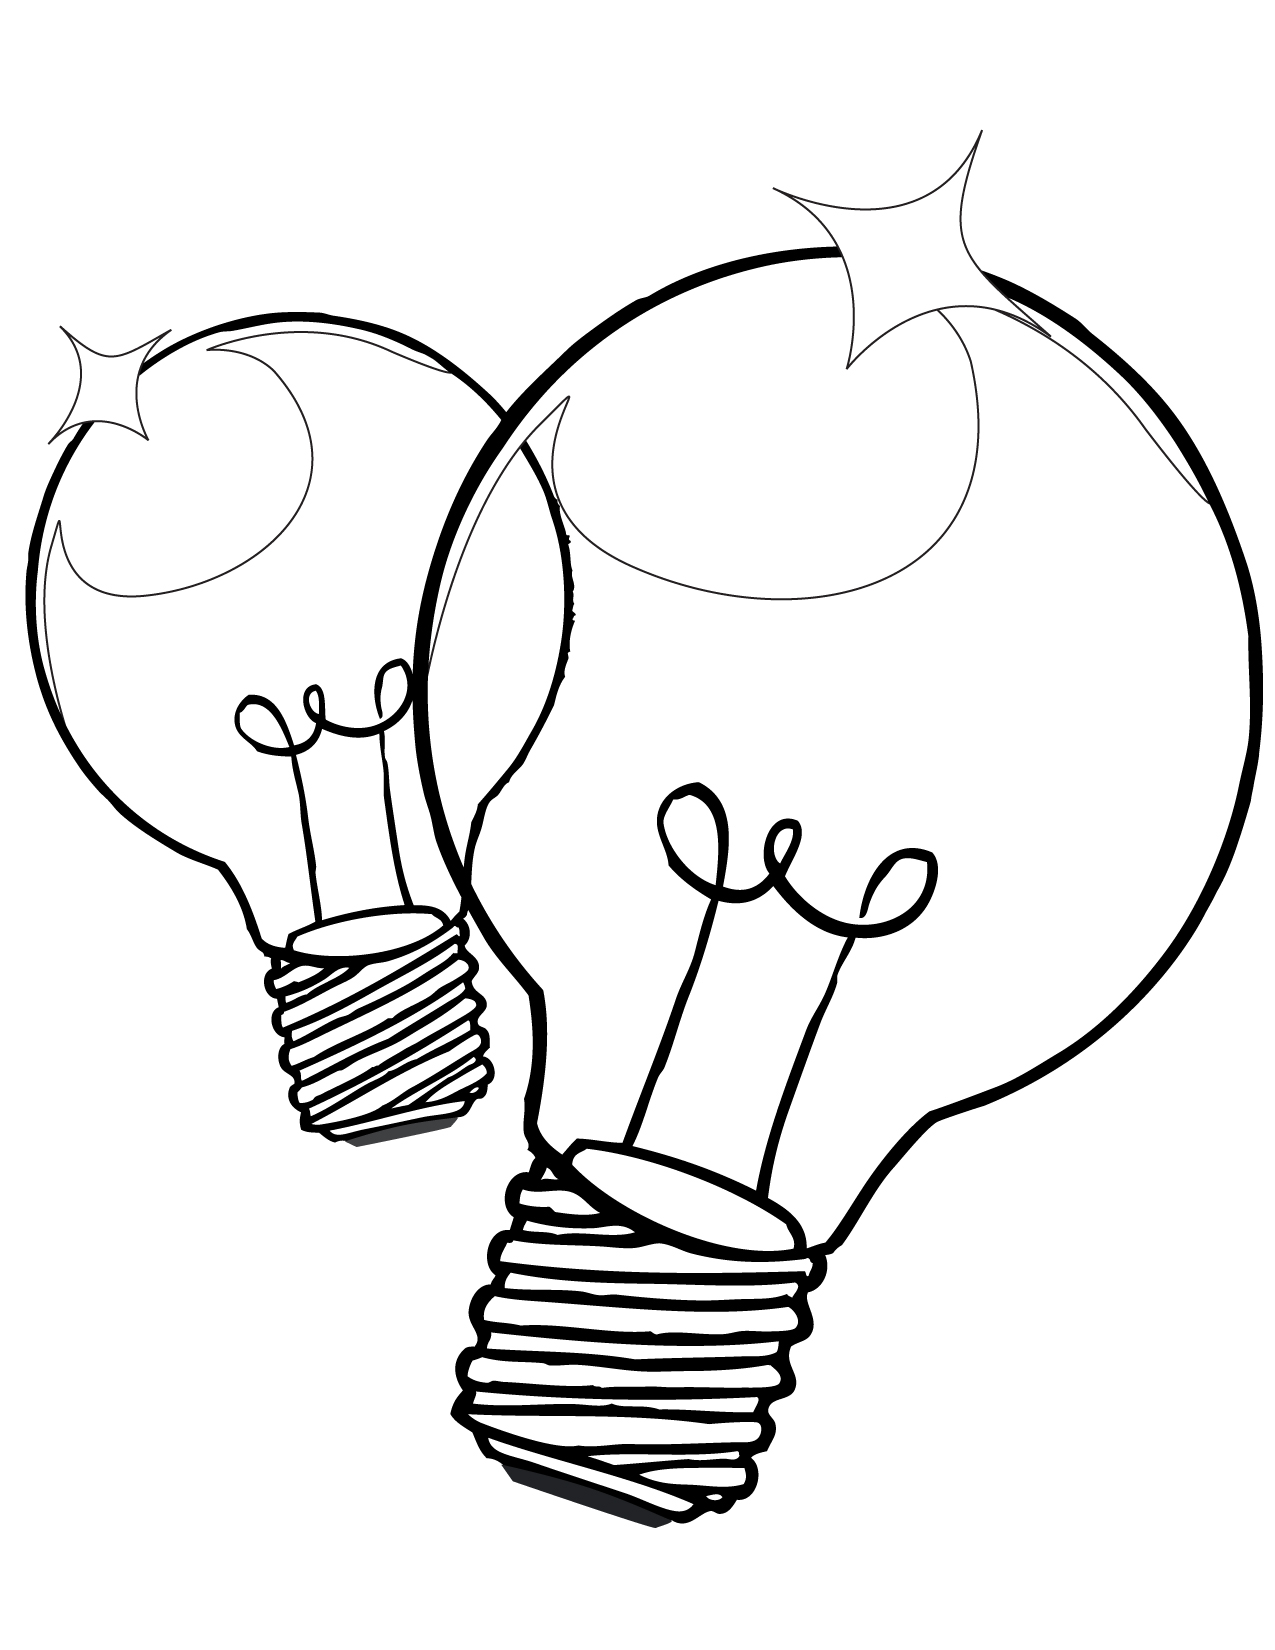 Lightbulb Coloring Page  Handipoints